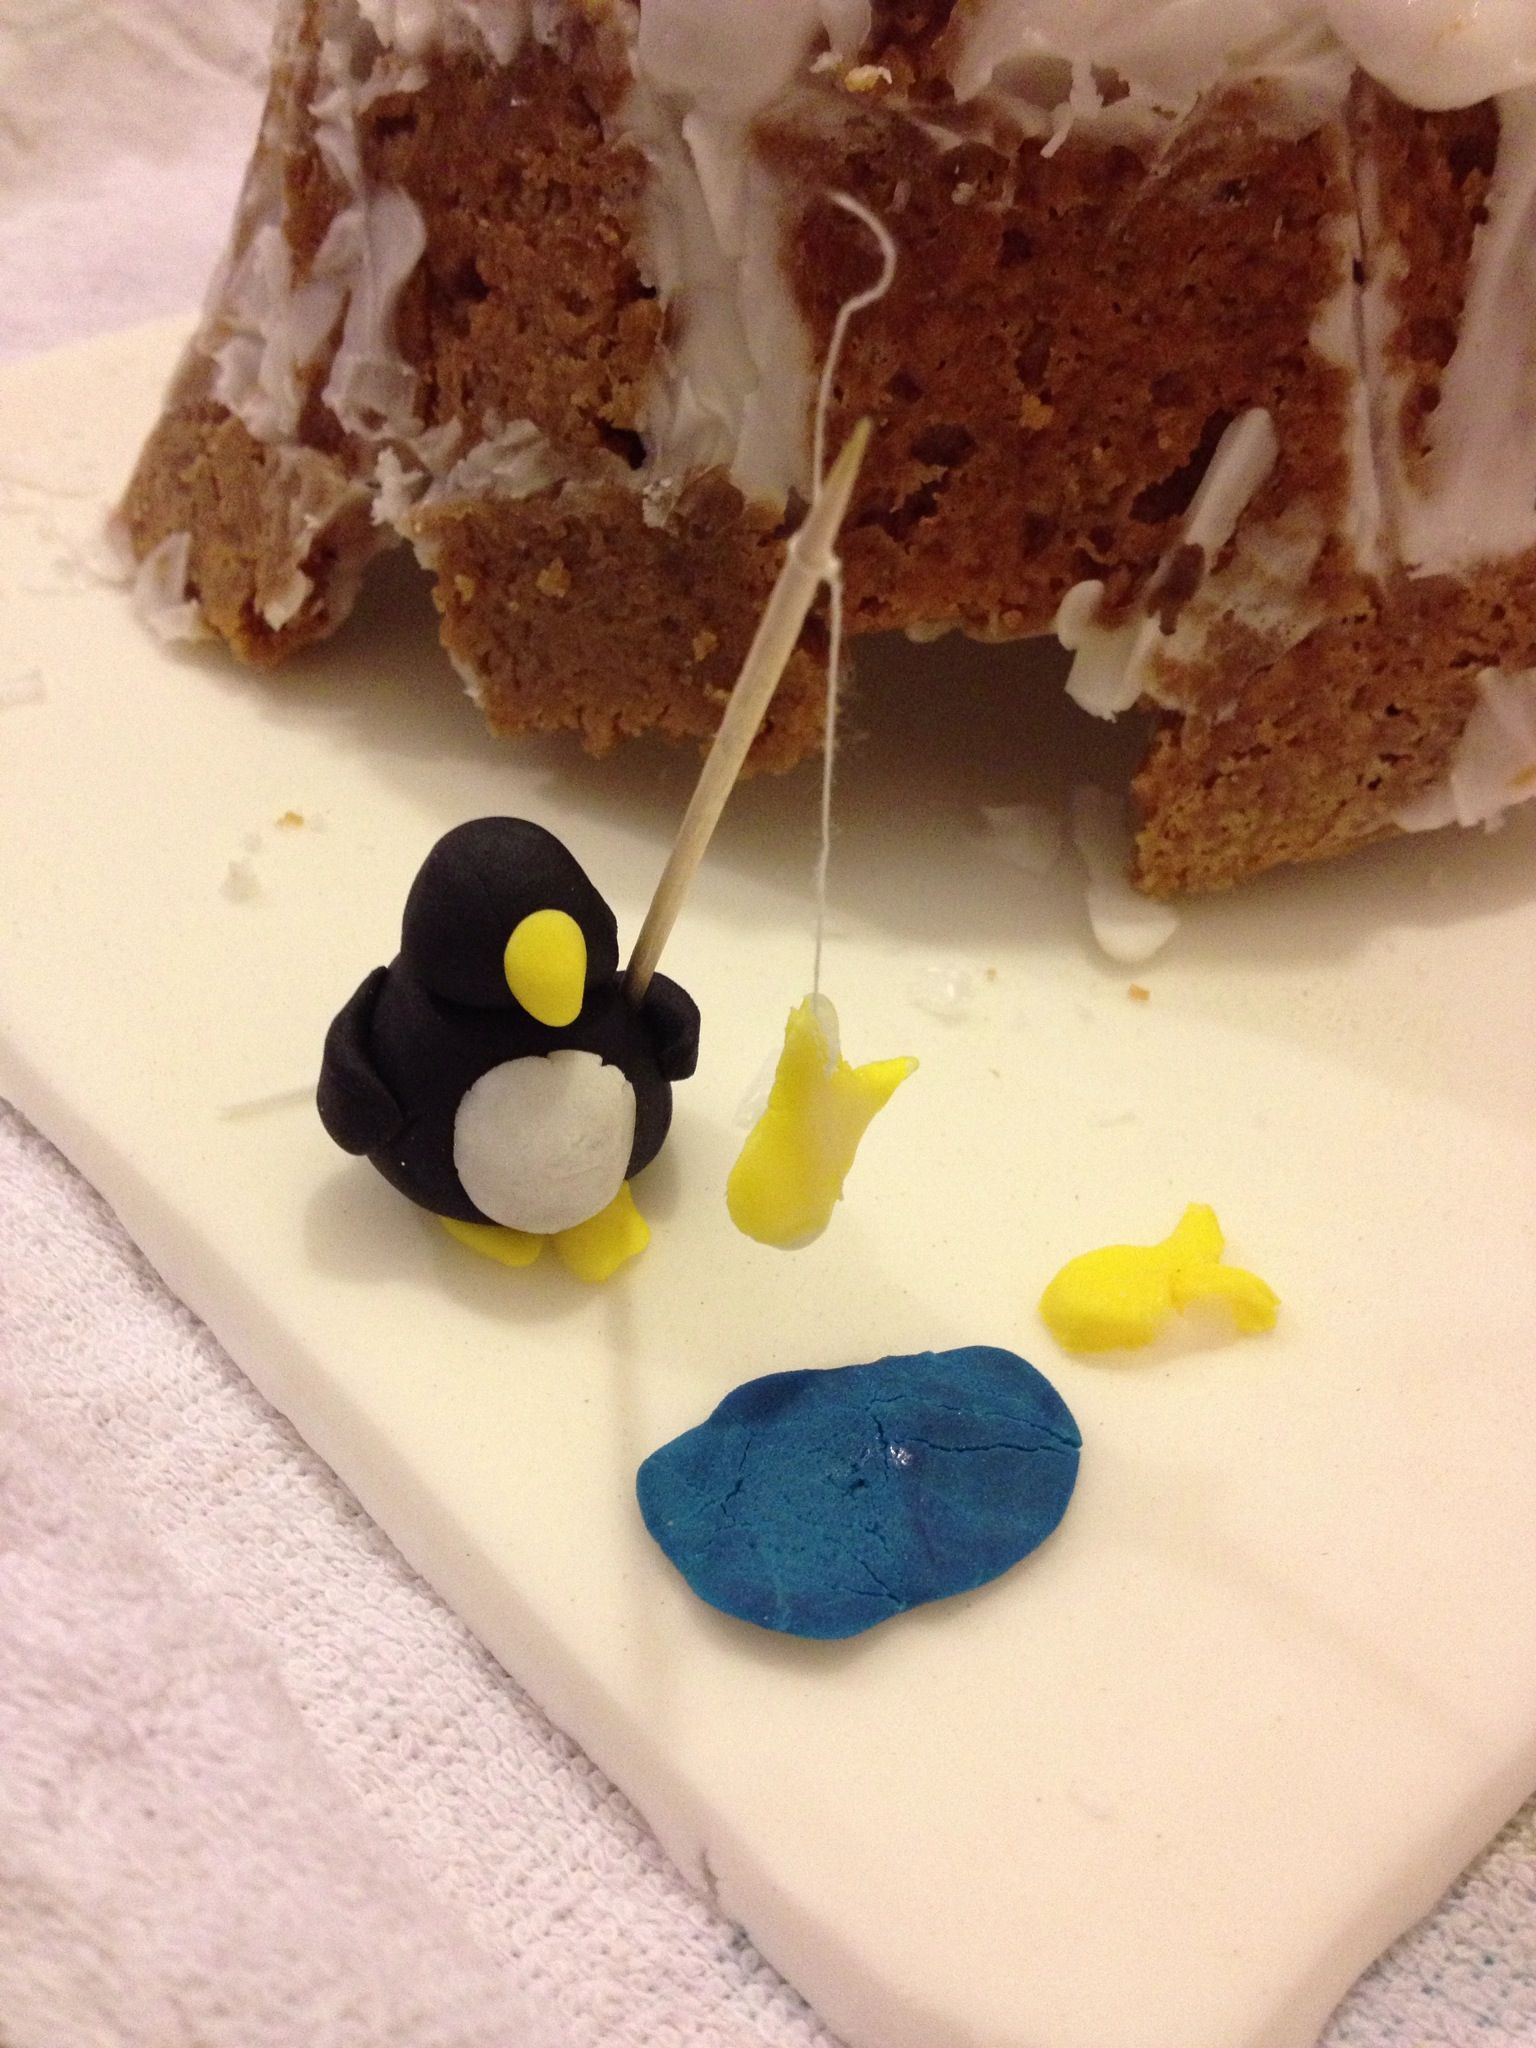 Icing penguin fishing